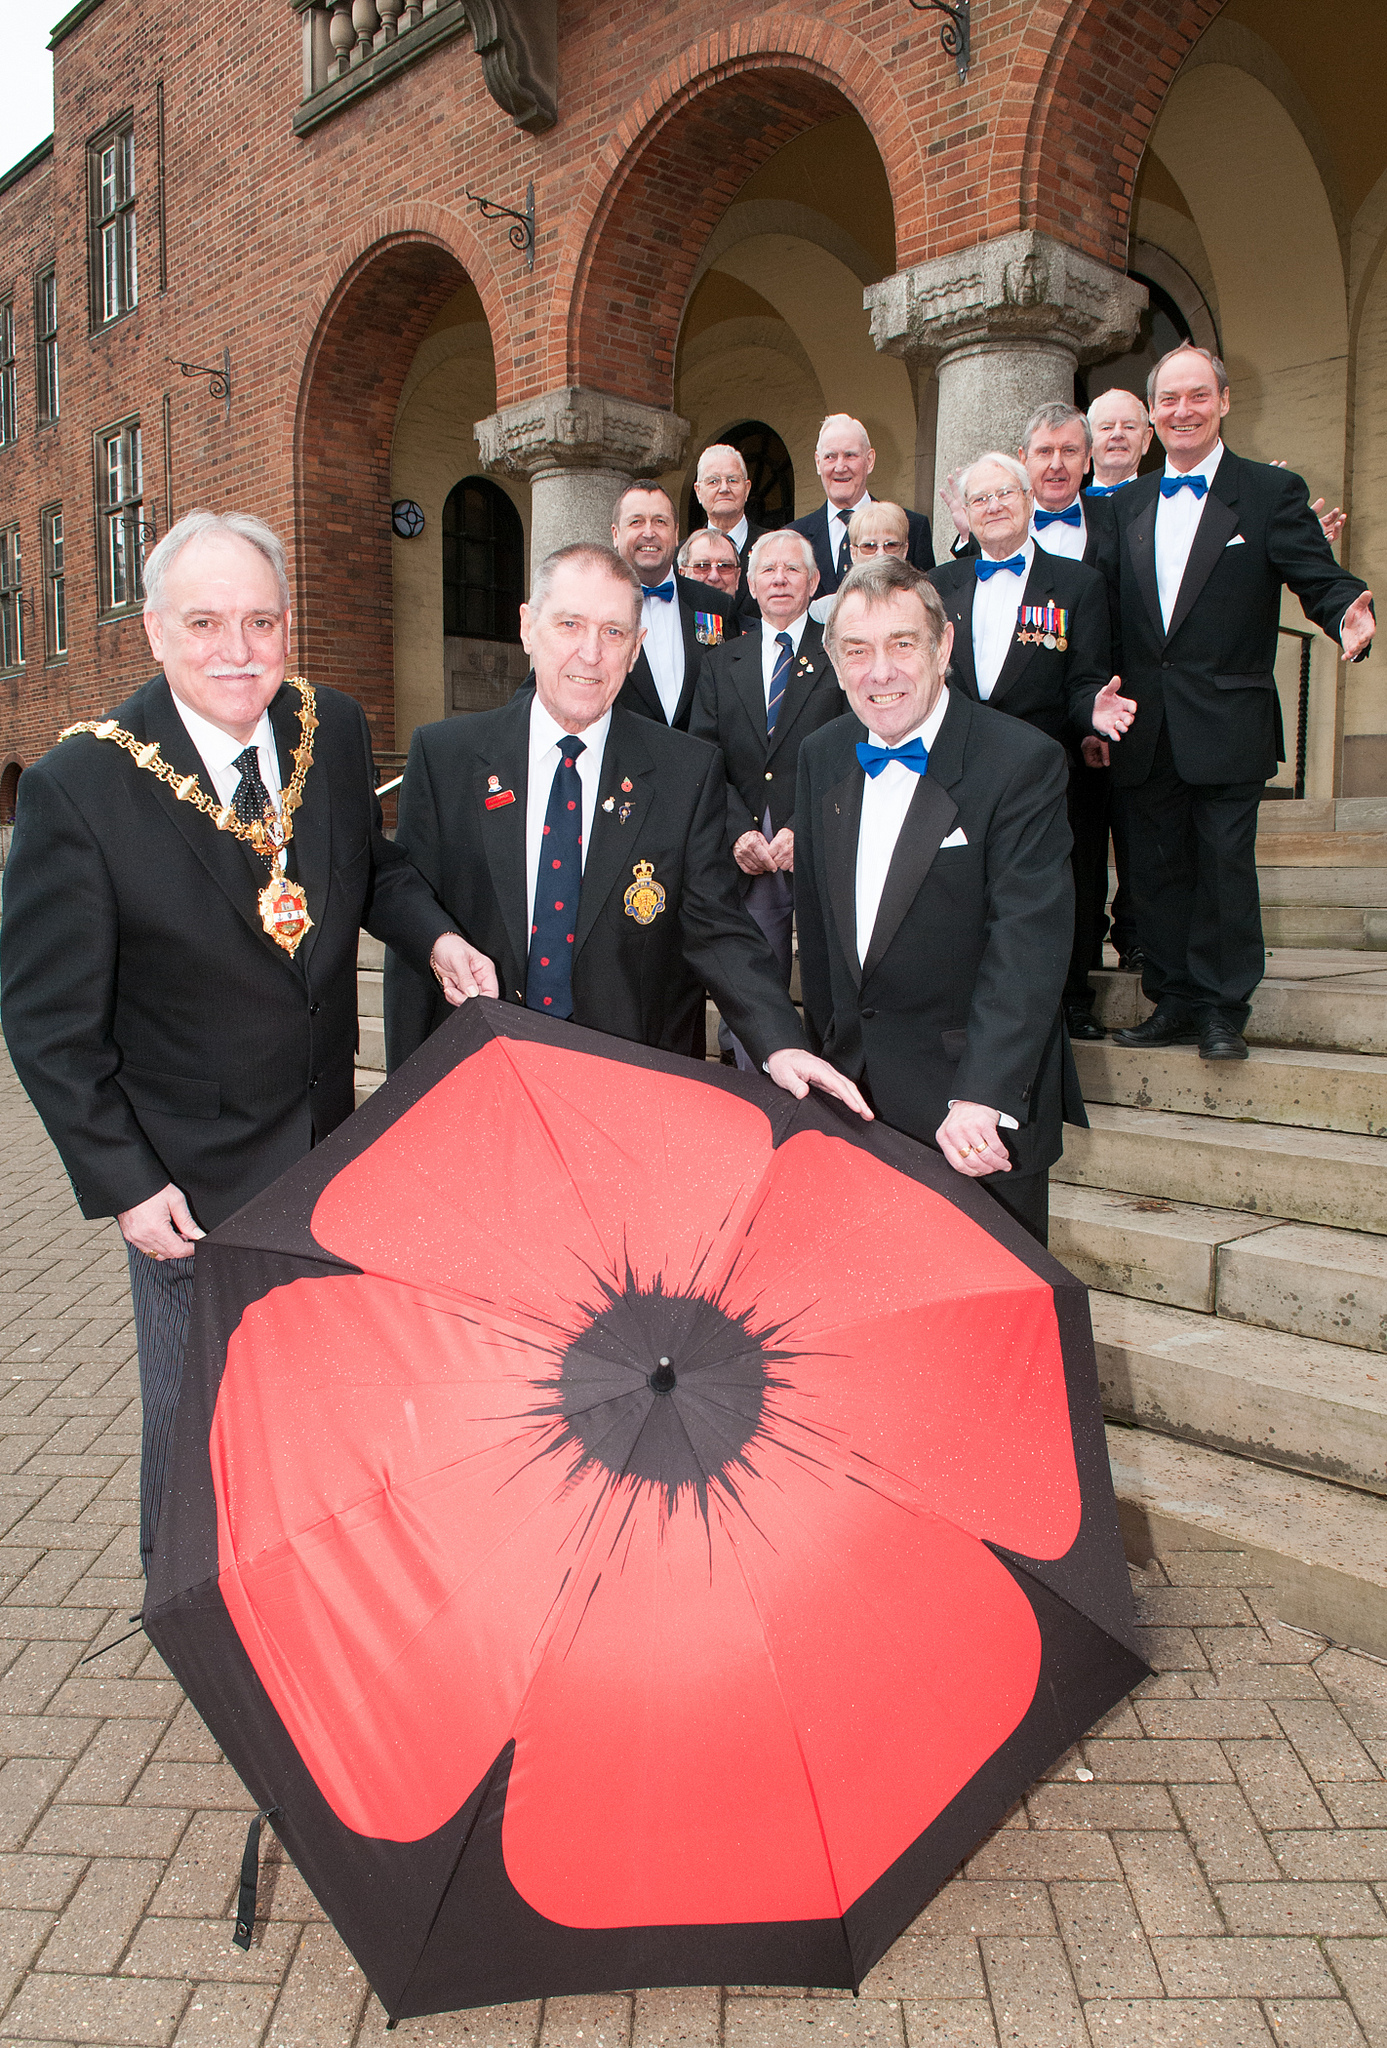 Cllr Alan Finch with Bob Townsend, Royal British Legion poppy organiser and Keith Moss, chairman of the Gentlemen Songsters Male Voice Choir.